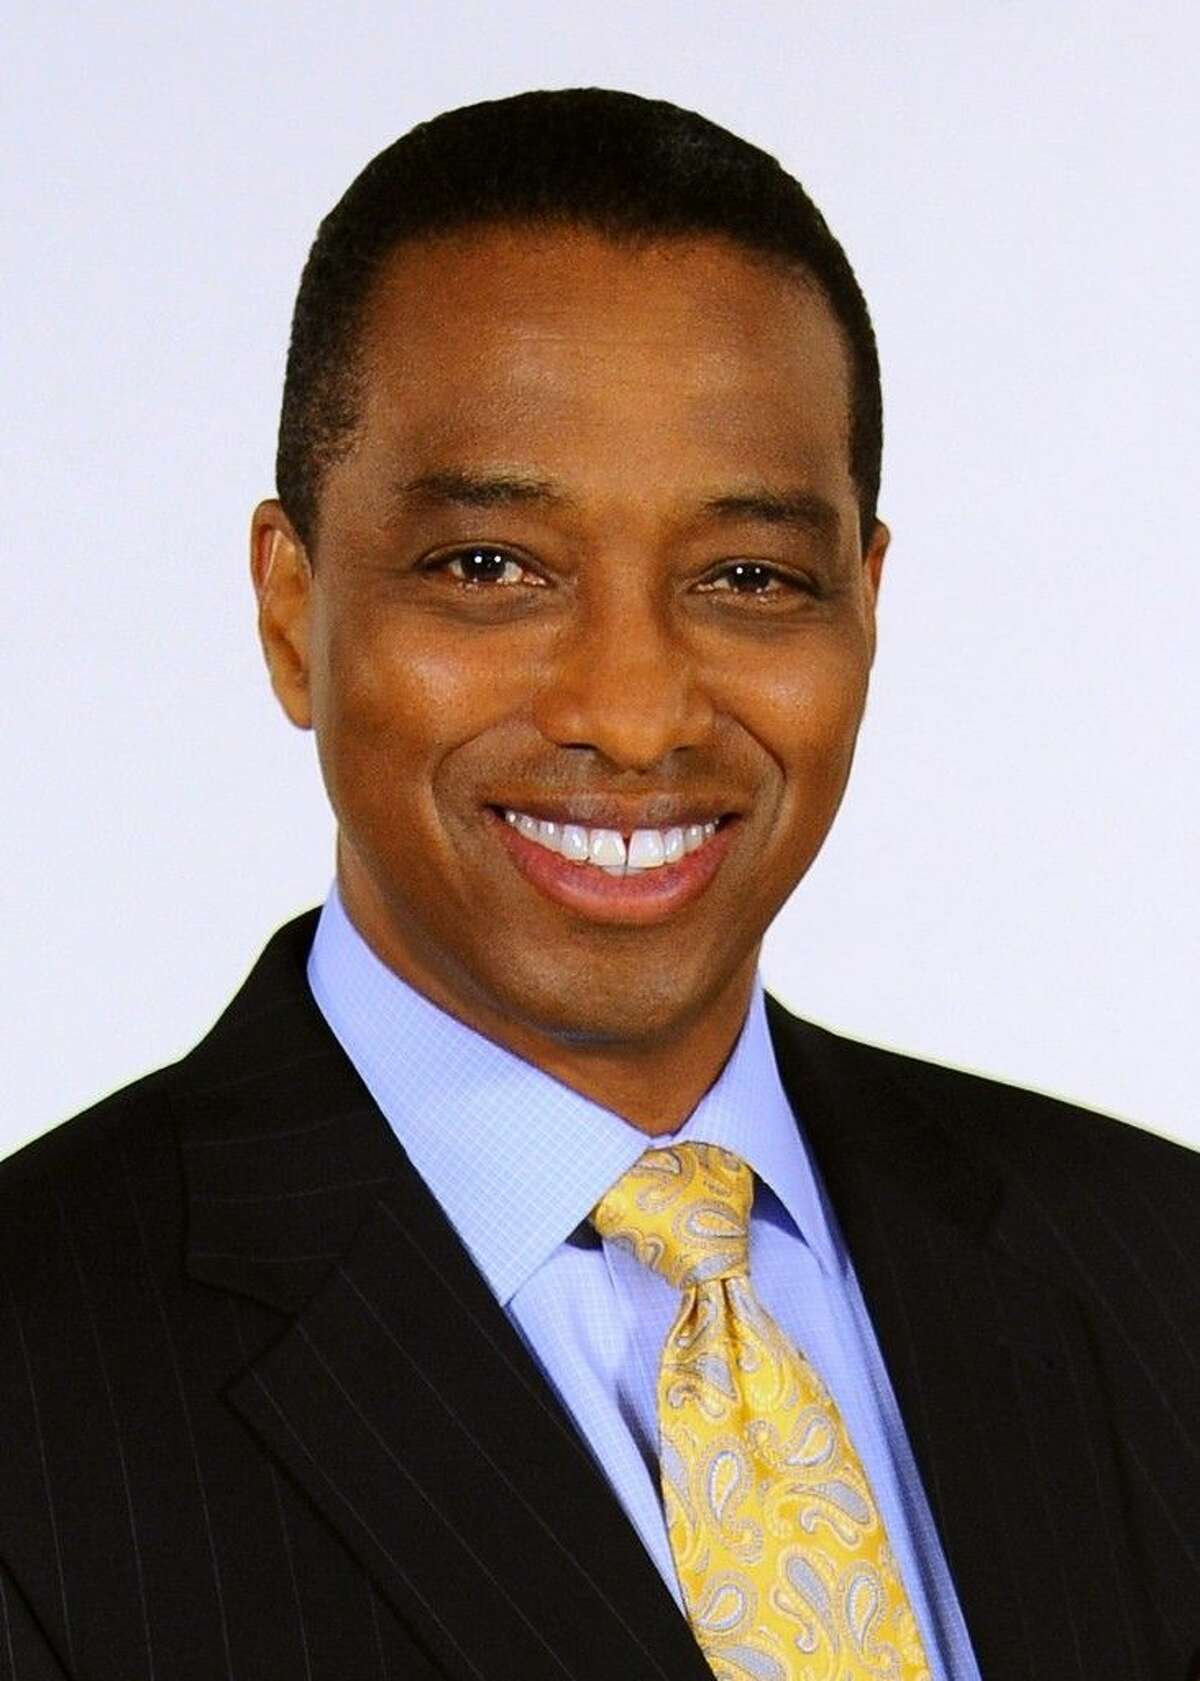 KPRC Local 2 Meteorologist Khambrel Marshall will be the keynote speaker at the San Jacinto College December commencement ceremony. Photo credit: KPRC Local 2.